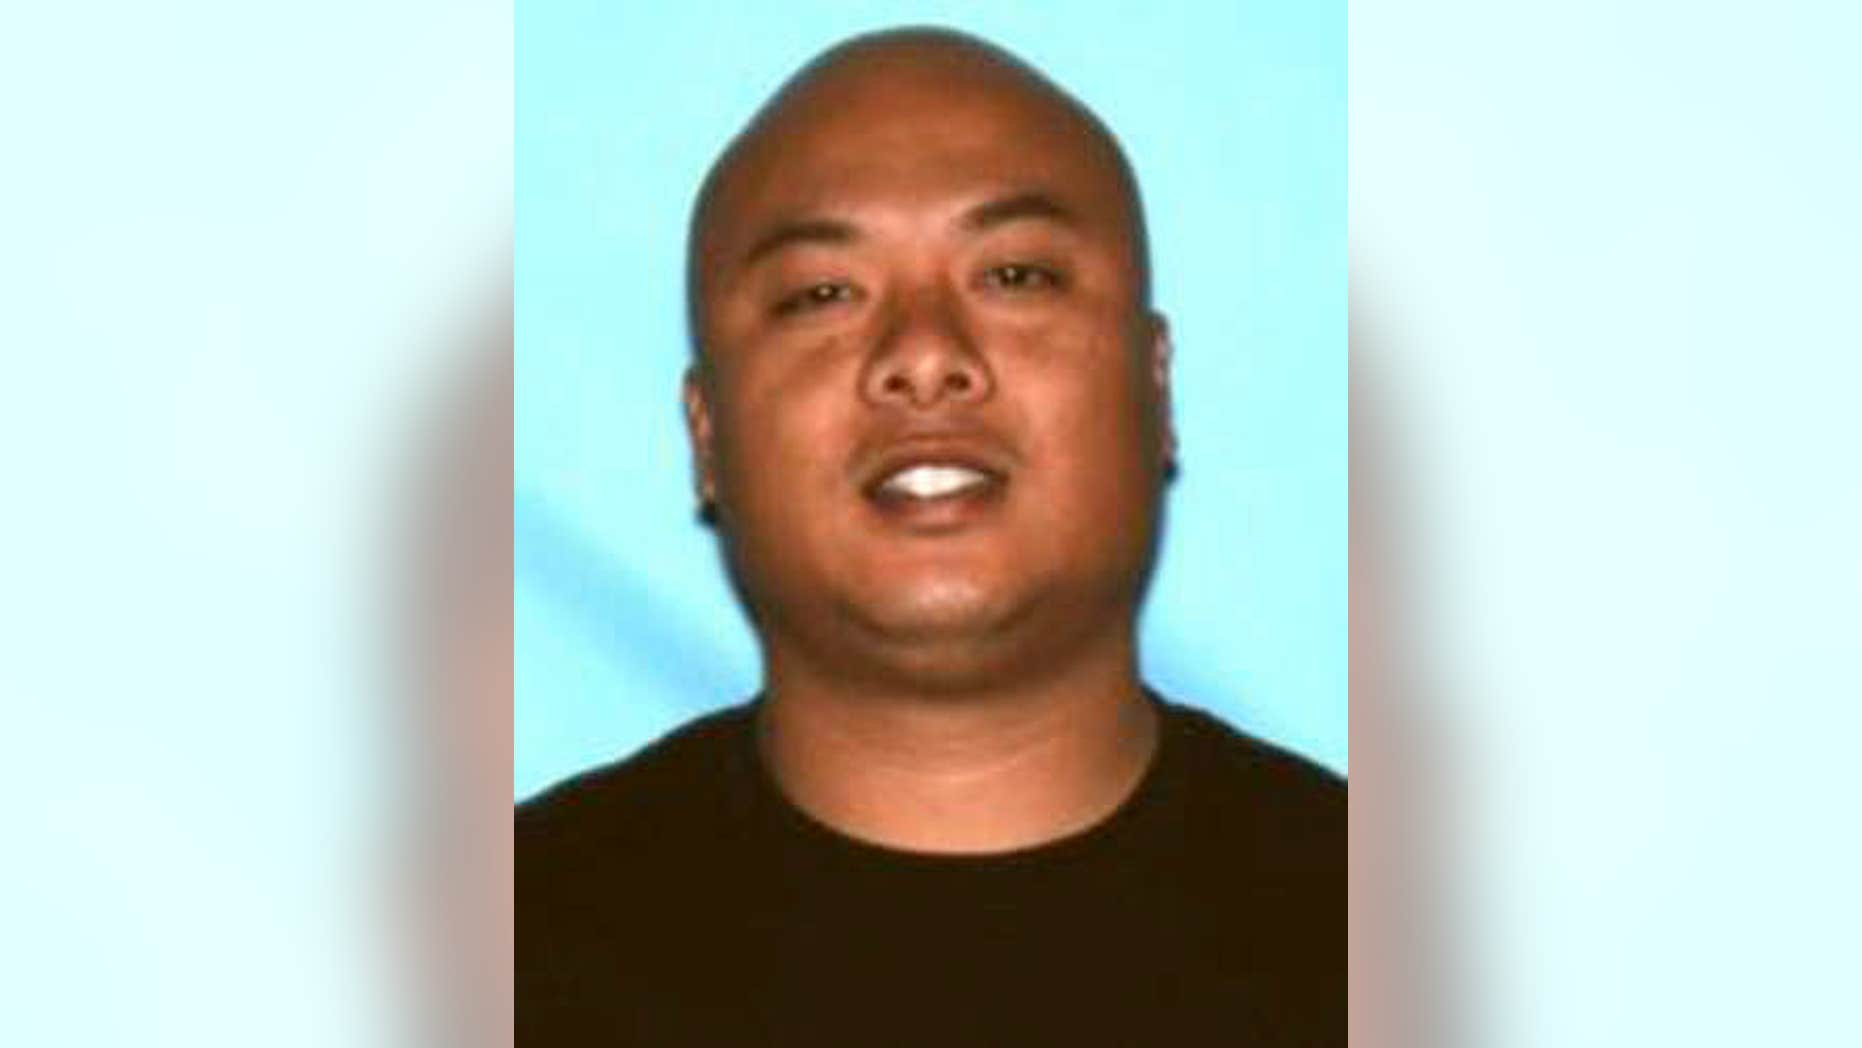 FILE - This undated file photo provided by the Honolulu Police Department shows Officer Jessie Laconsay.